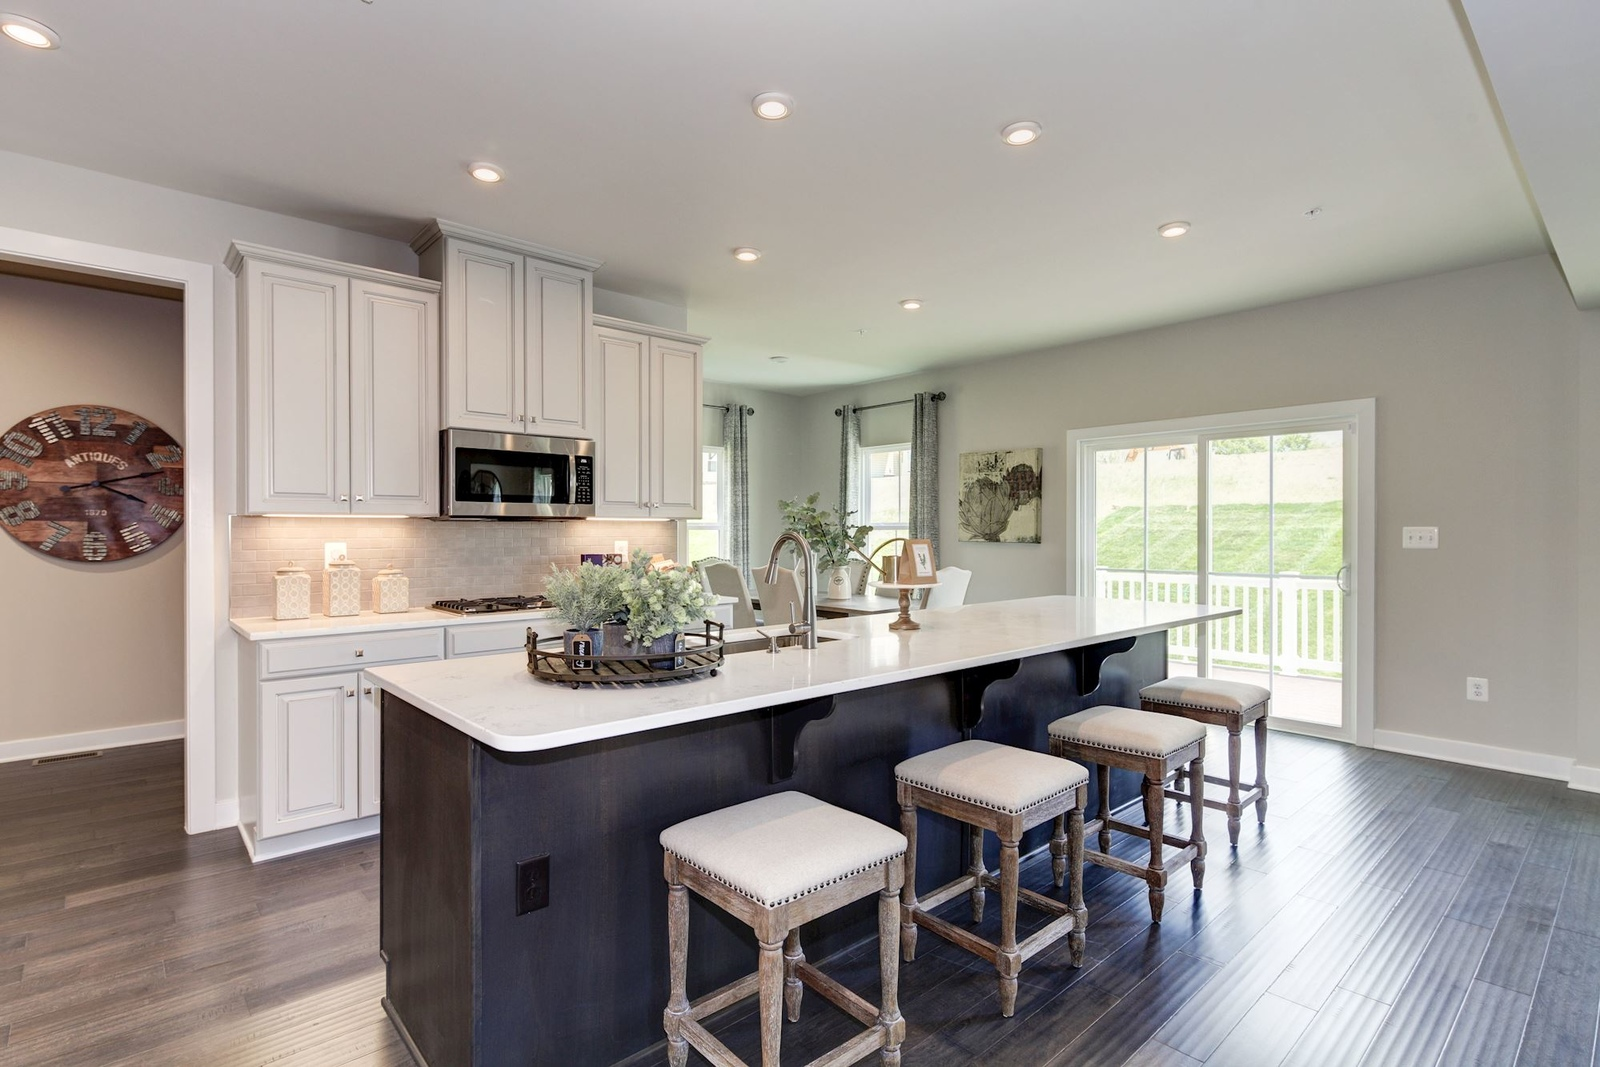 New Homes for sale at Clover Ridge in Frederick, MD within the ...